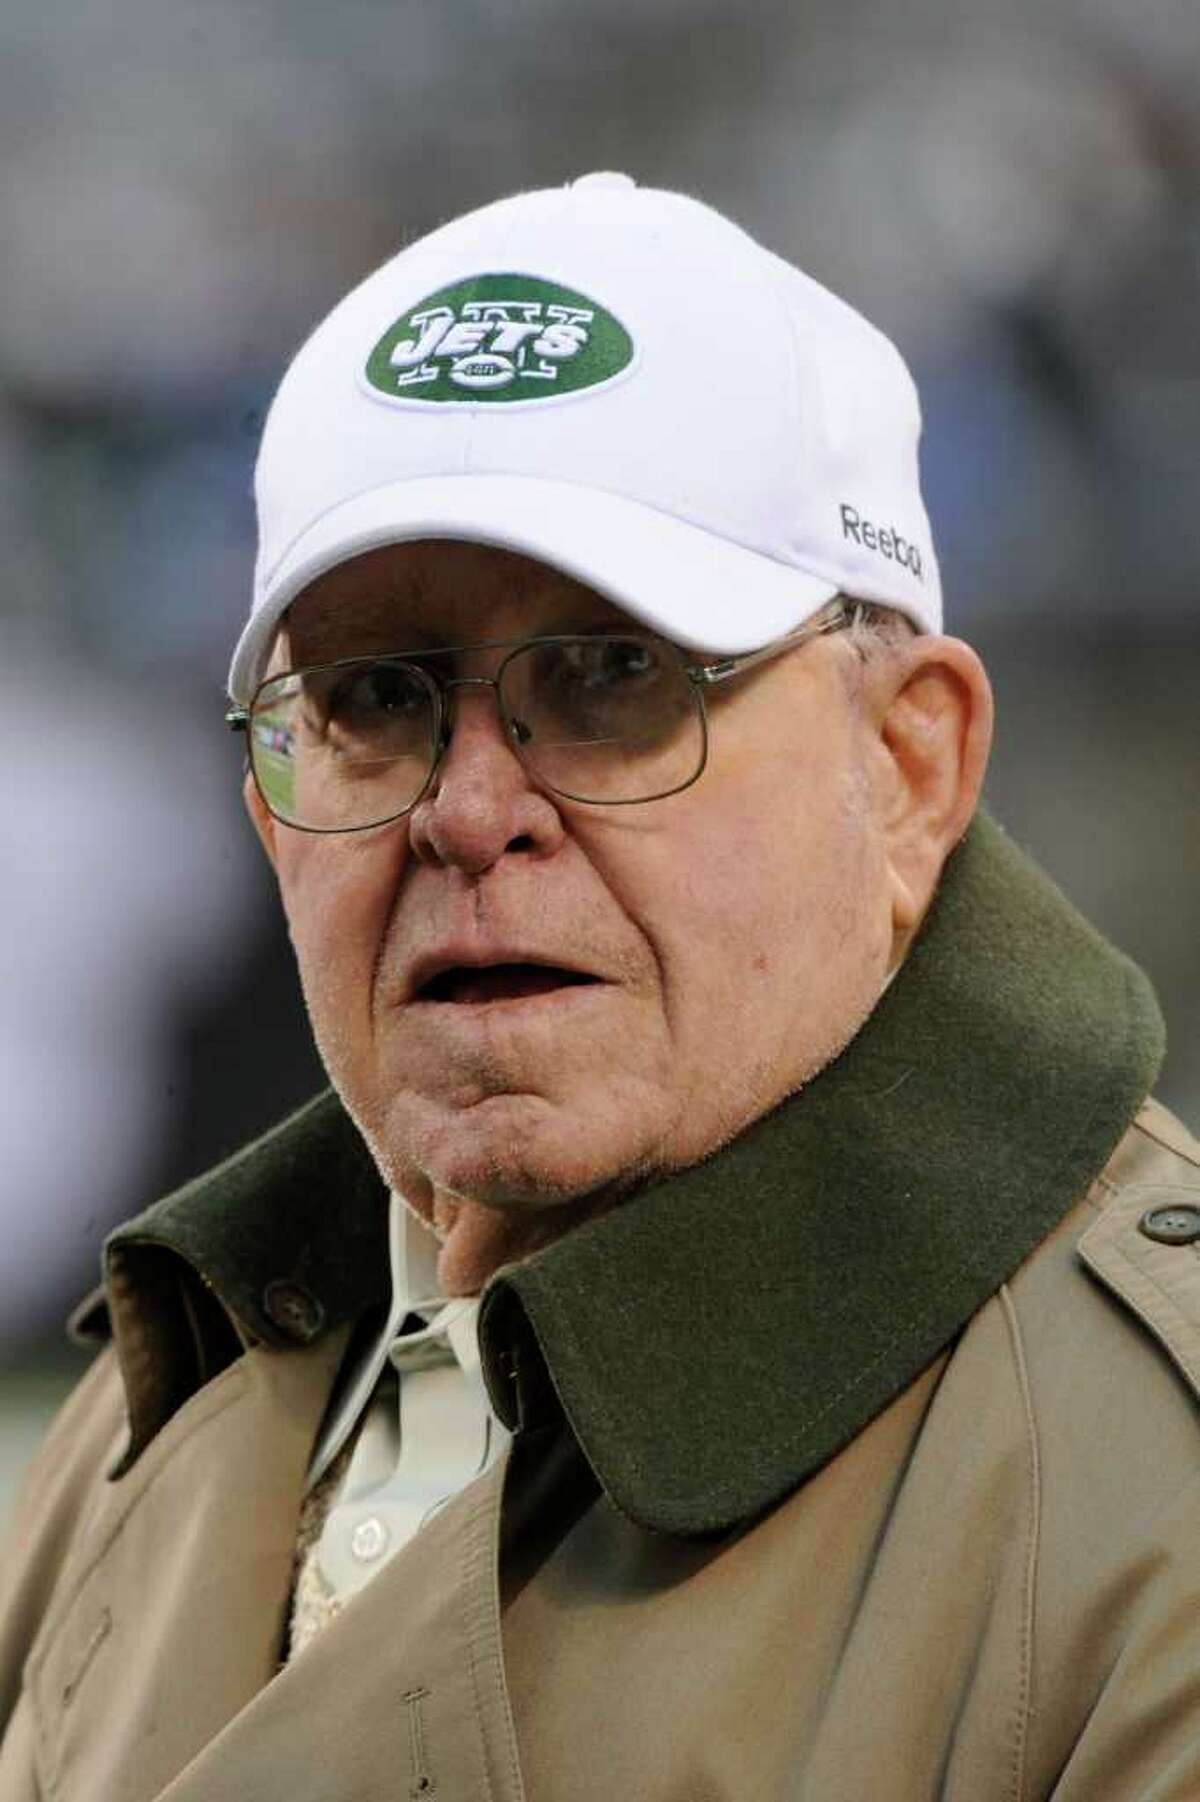 Now 80 years old, former NFL coach Buddy Ryan avidly follows his twin sons' careers.